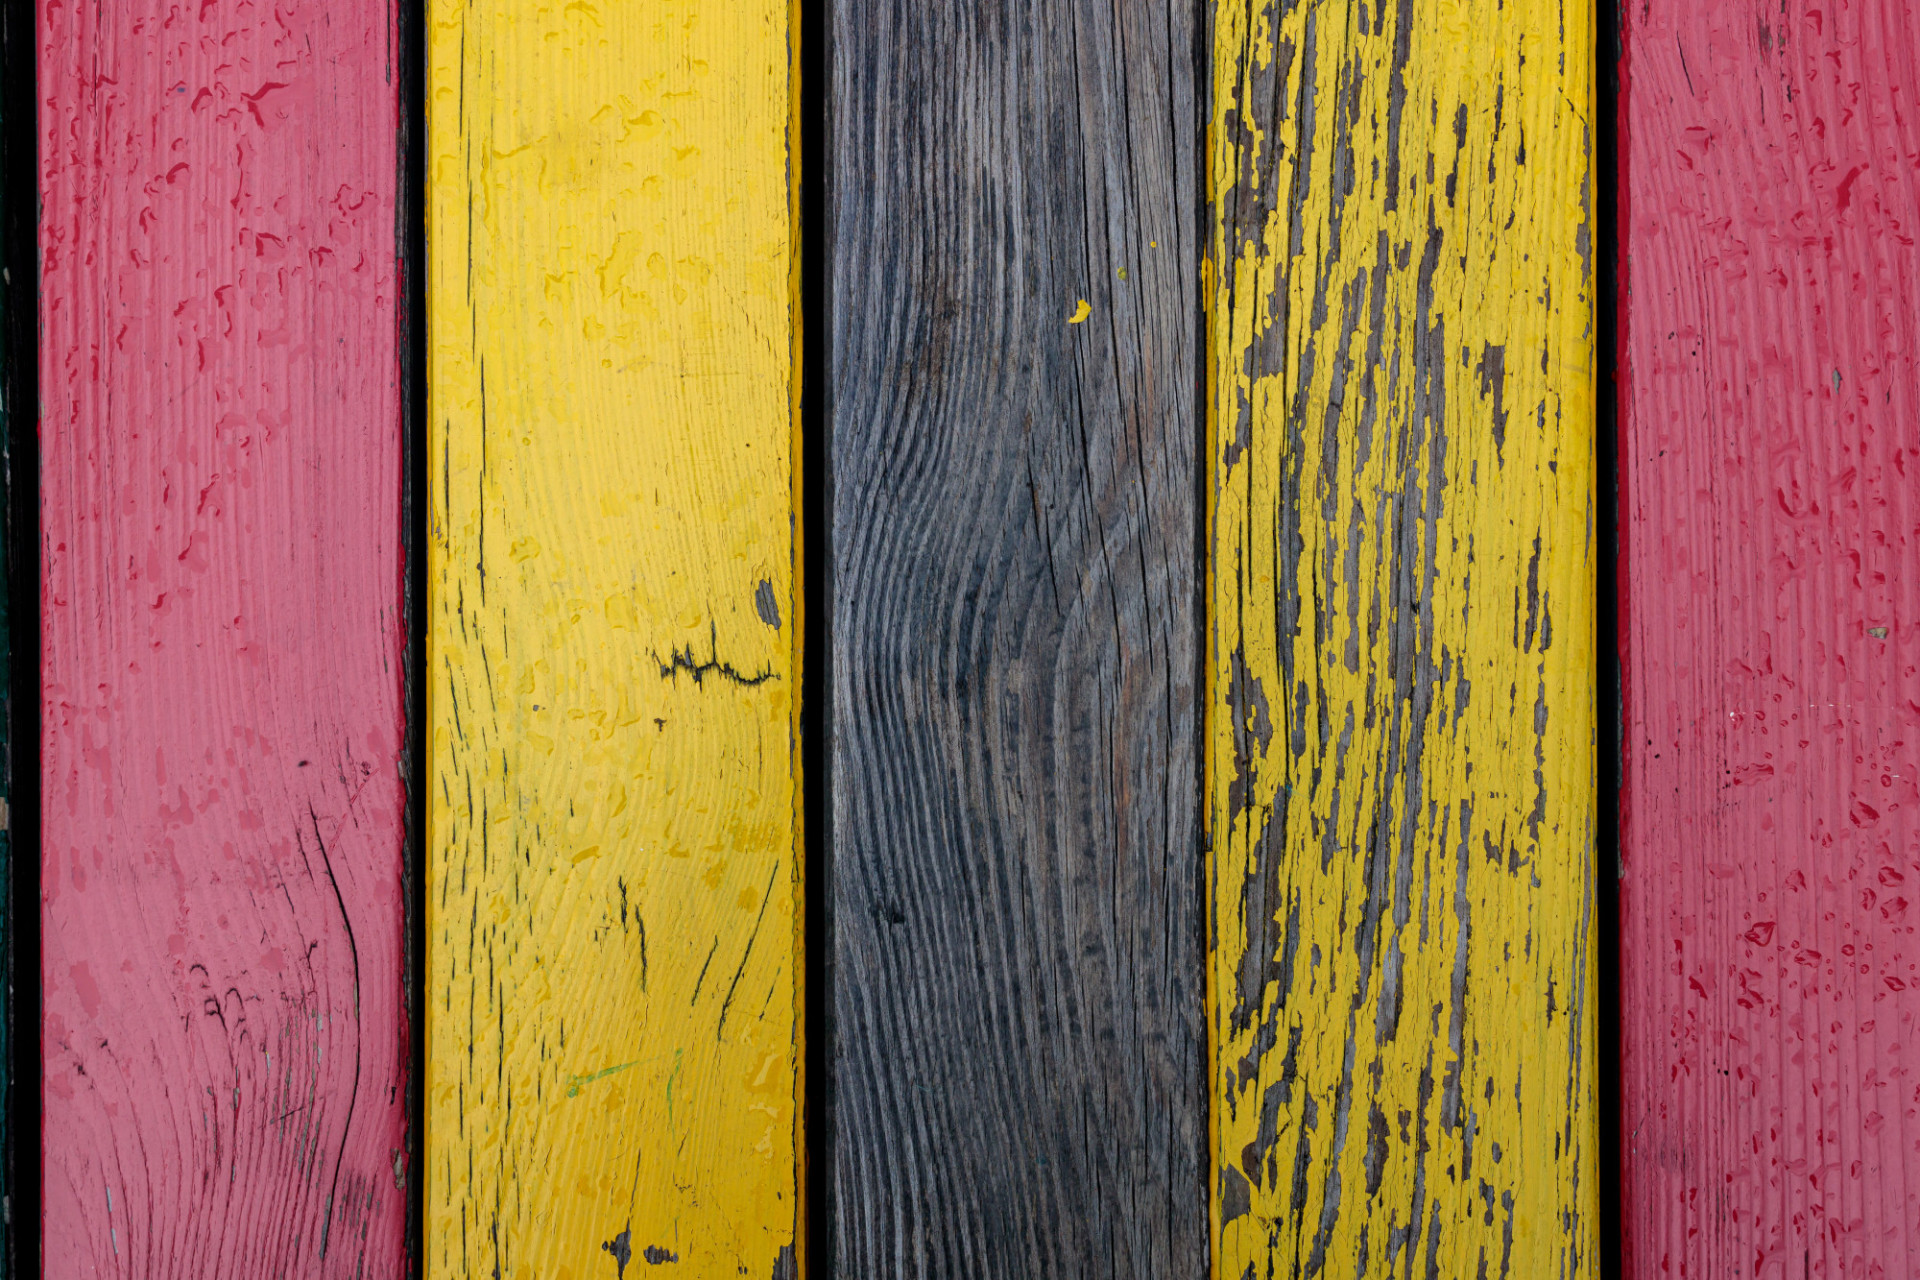 Yellow and red wooden wall texture